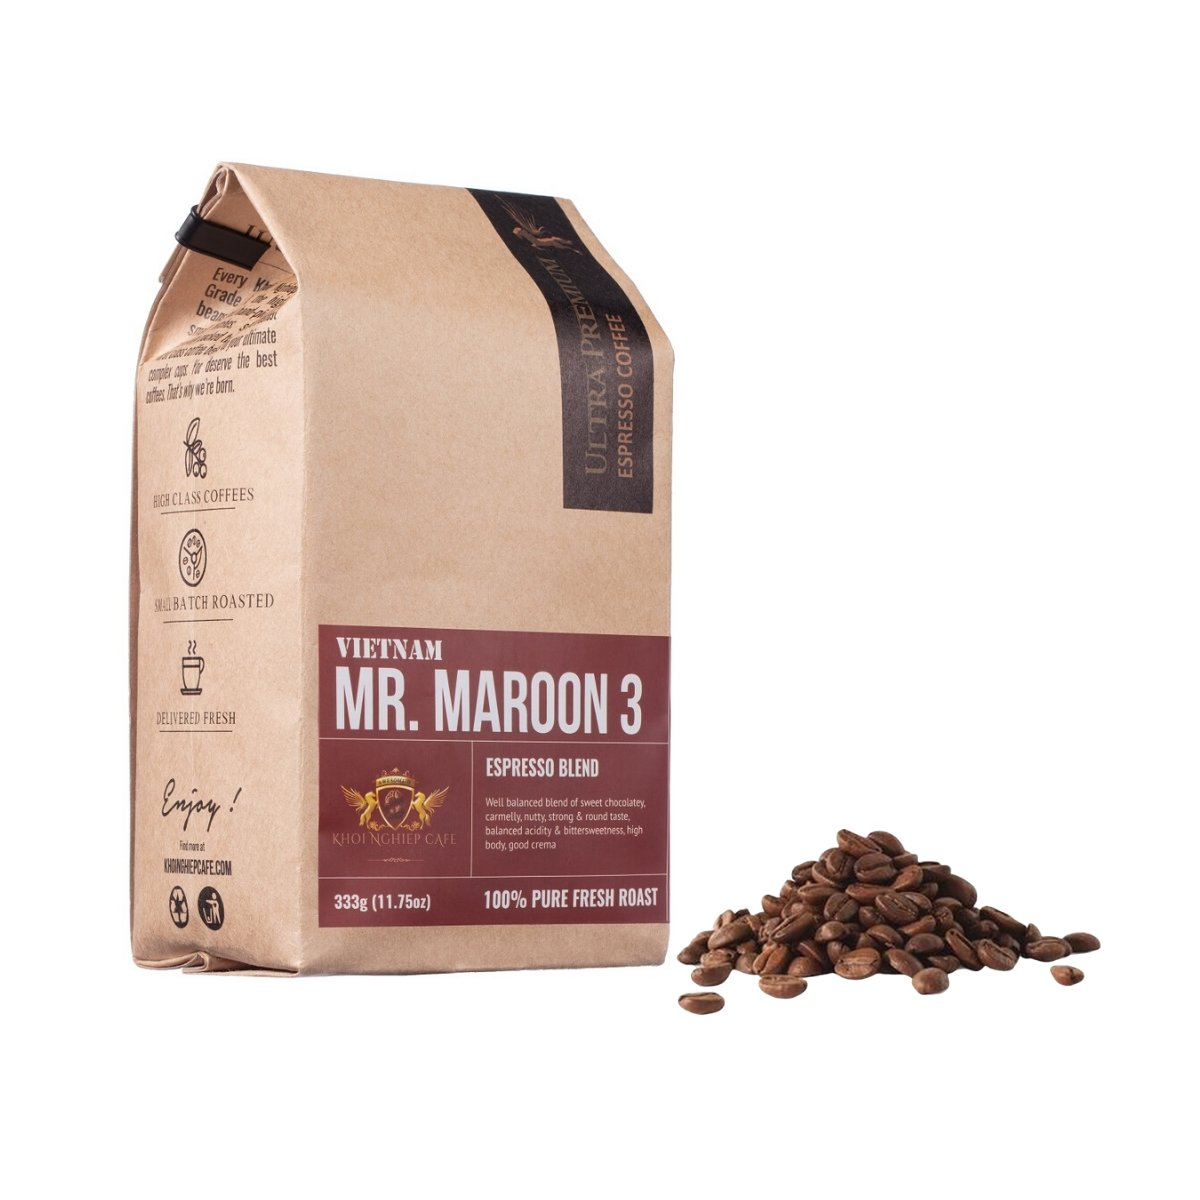 khoi nghiep cafe mr maroon 3 cafe hat ngon chuan y pha may espresso vietnam hcm